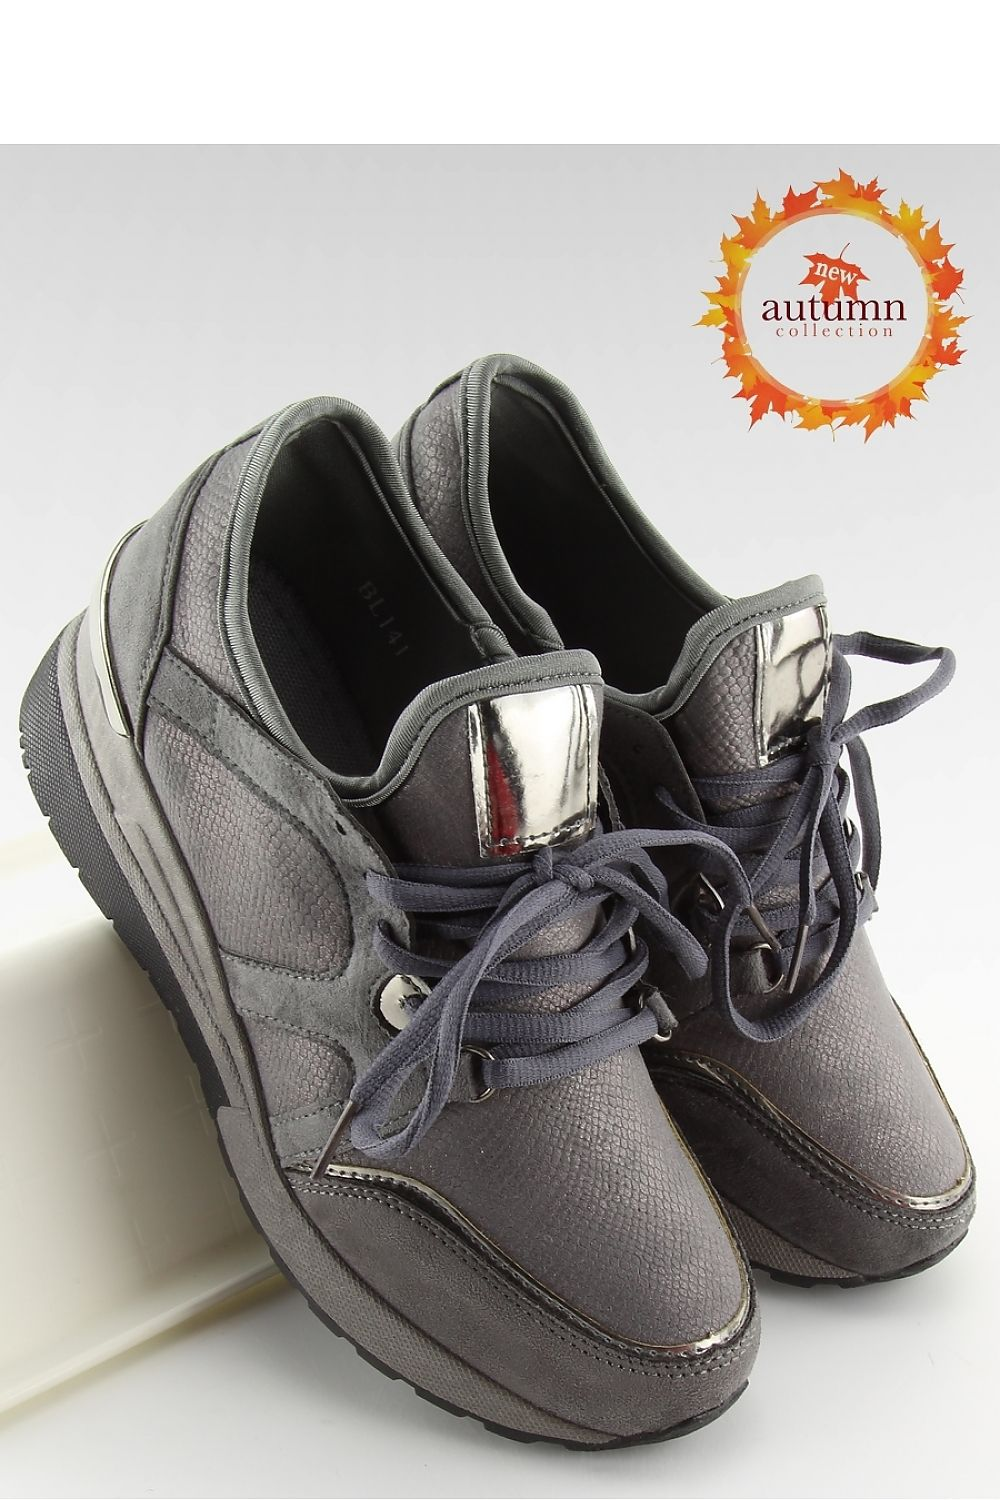 c62a7ff11fc7 Sport Shoes model 122560 Inello Wholesale Clothing Online